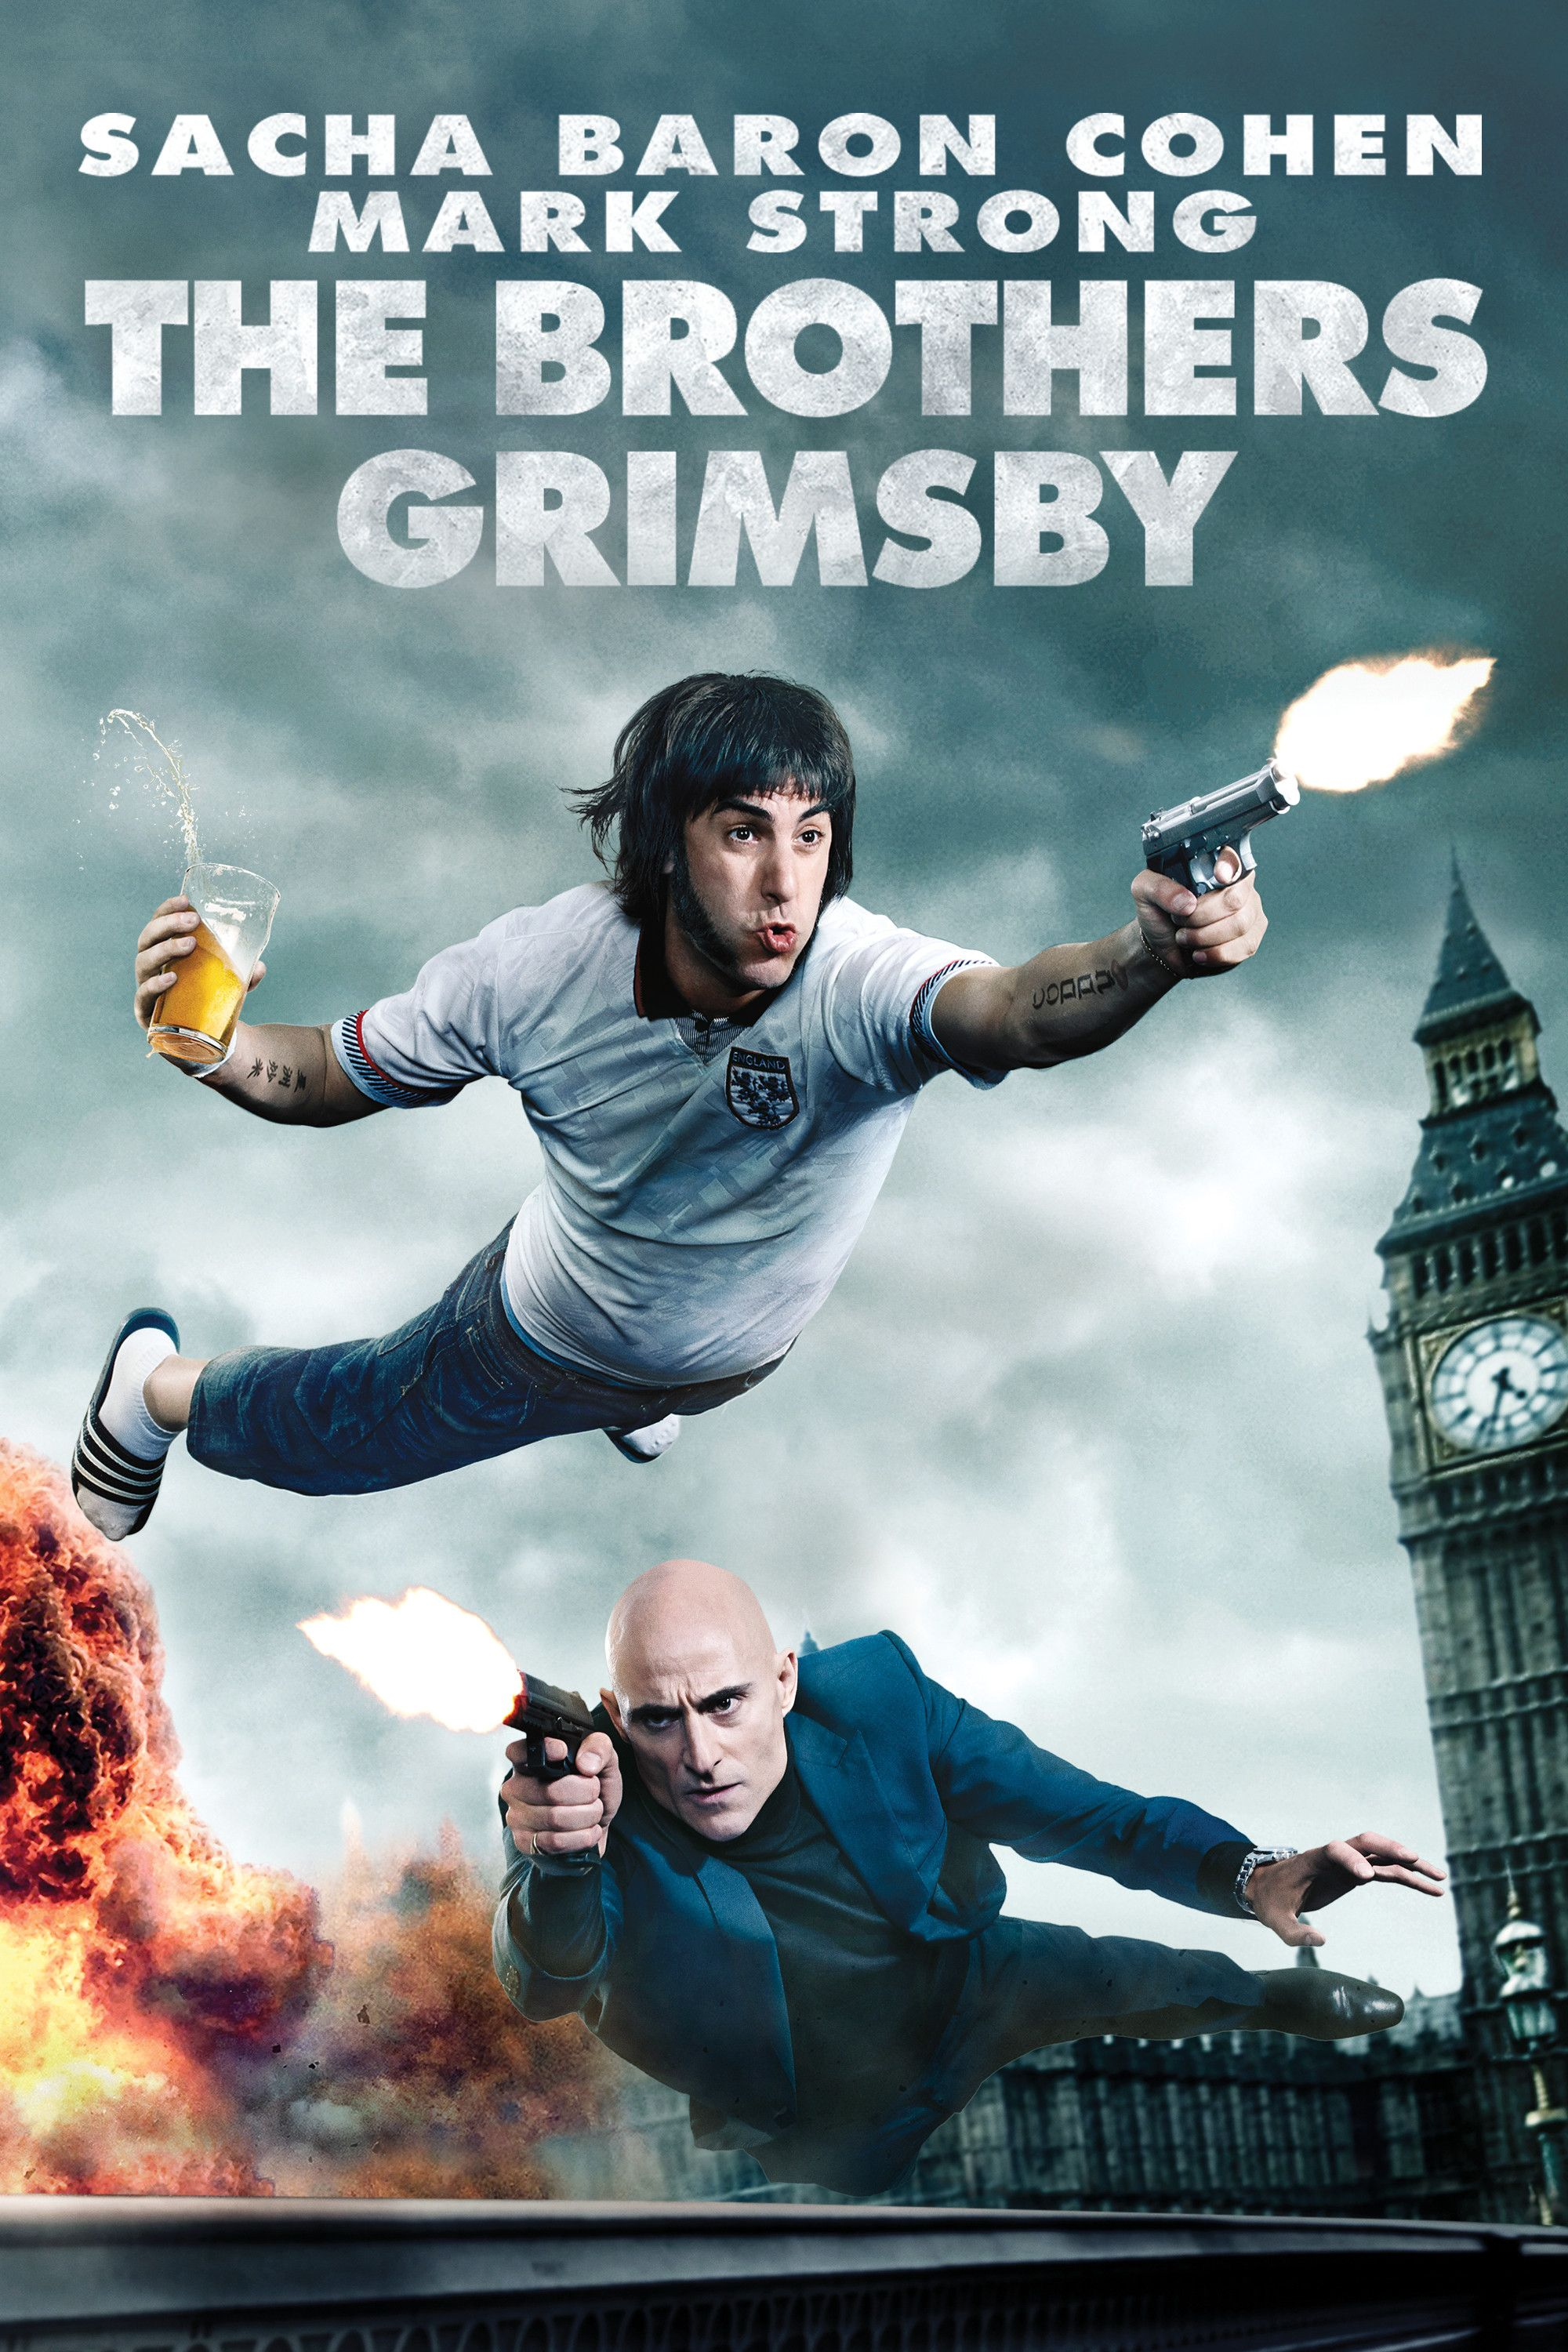 Grimsby Gets a Second Trailer and an Unscreenable Clip